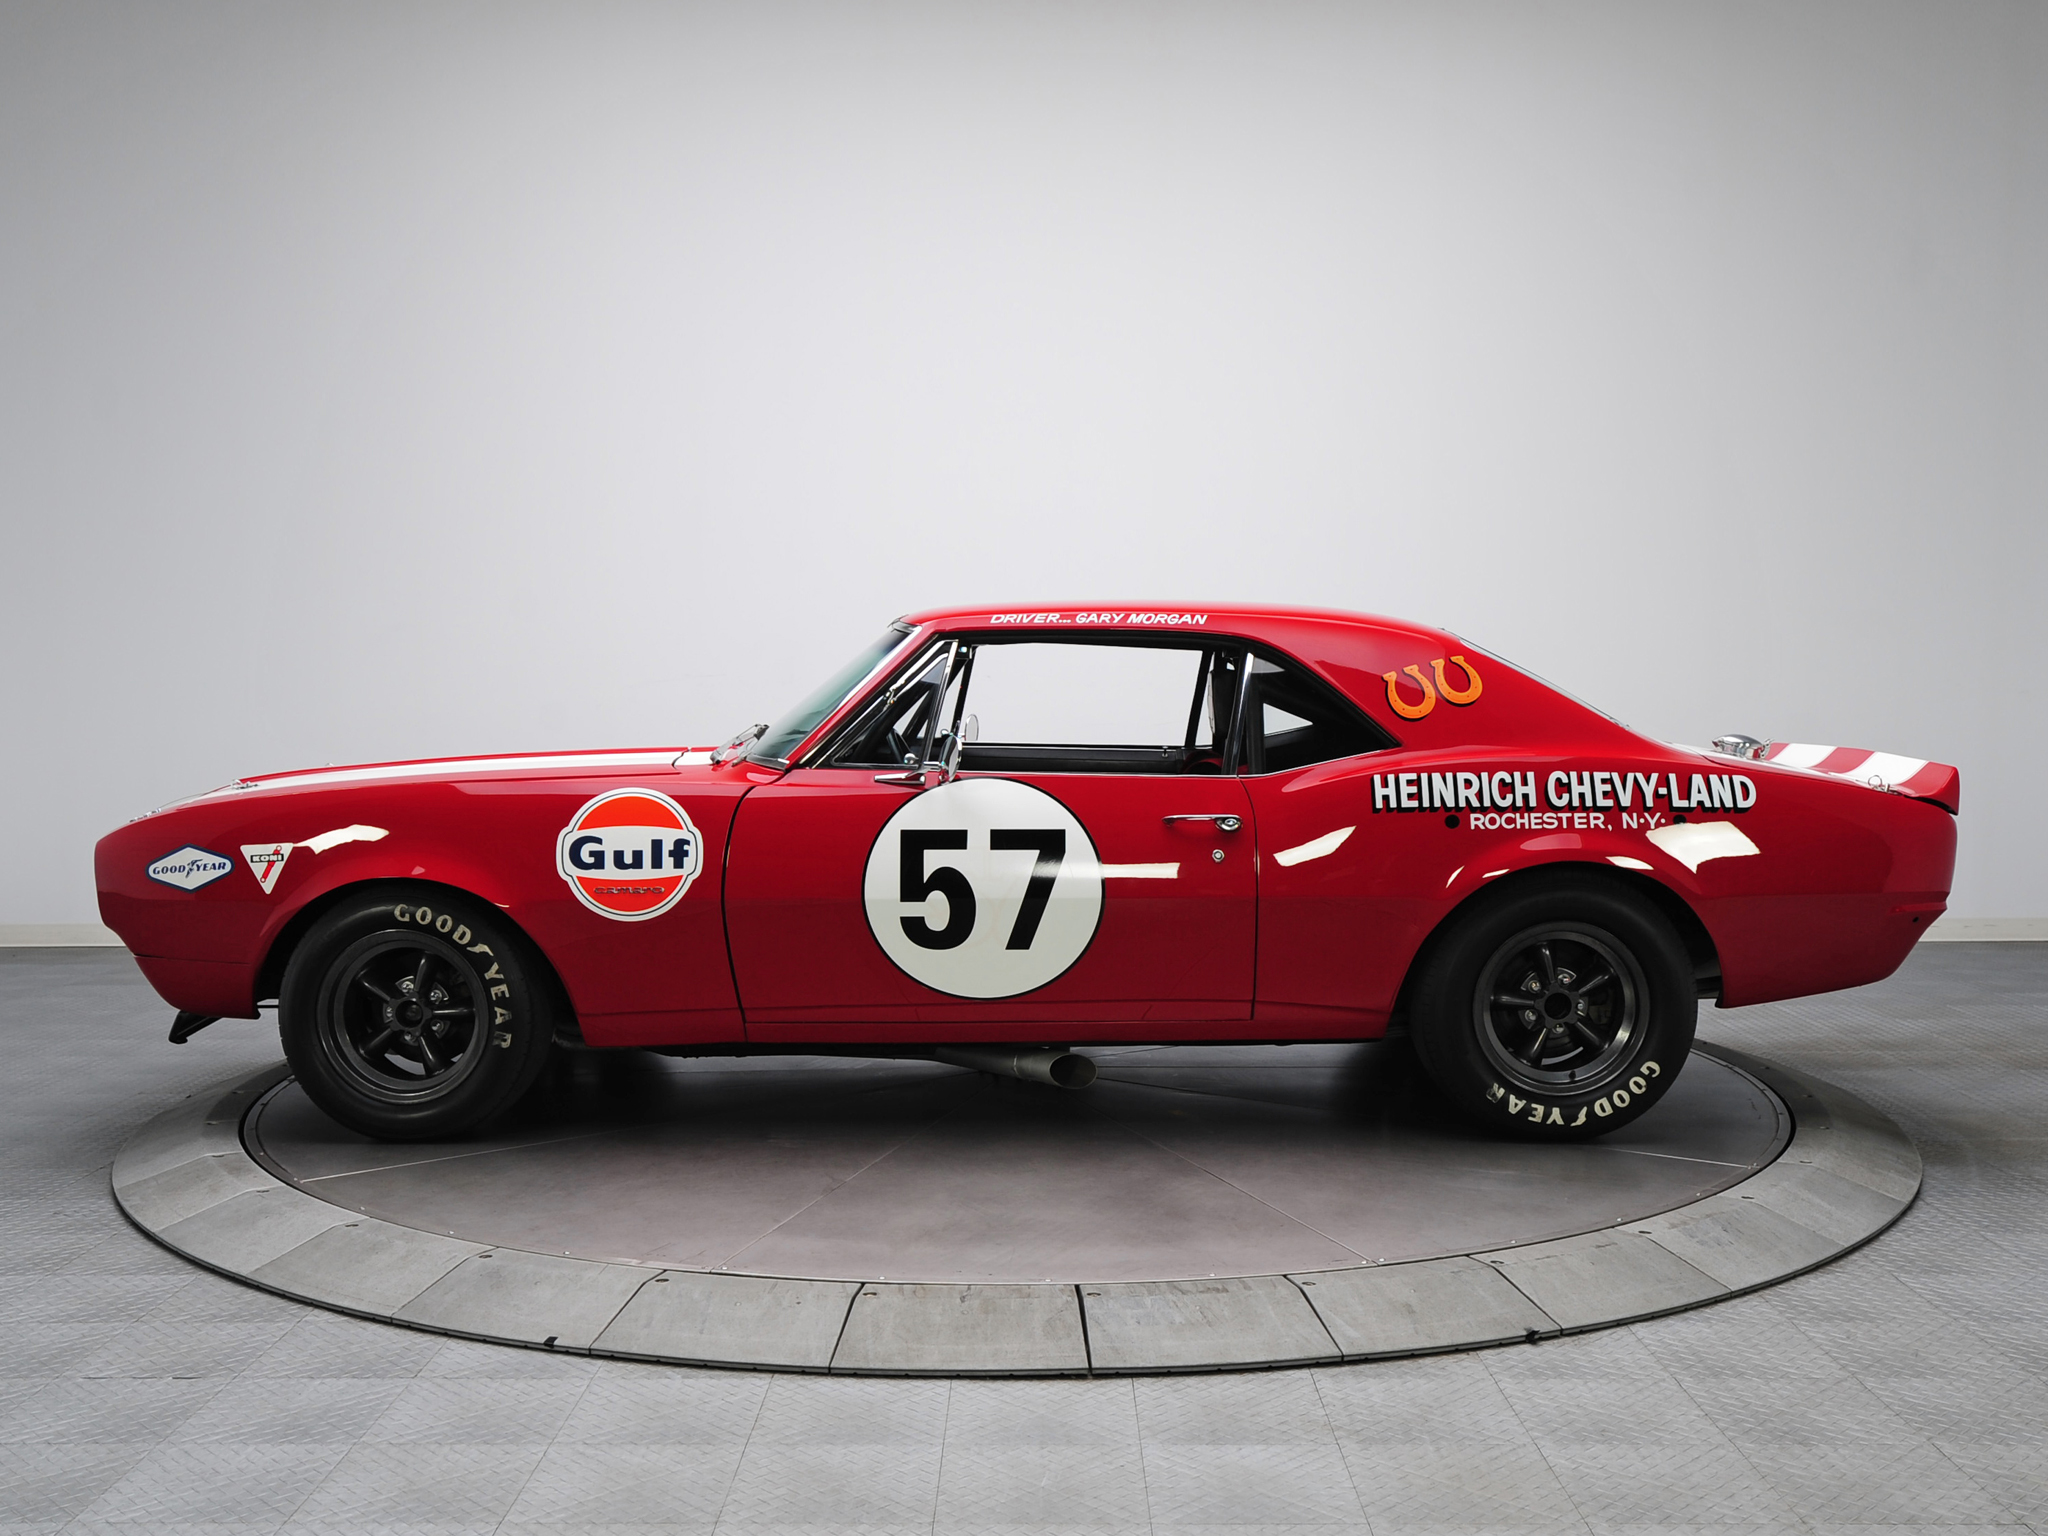 4k Car Wallpaper Mustang 1960 Chevrolet Camaro Z 28 Pre Production Trans Am Race Car